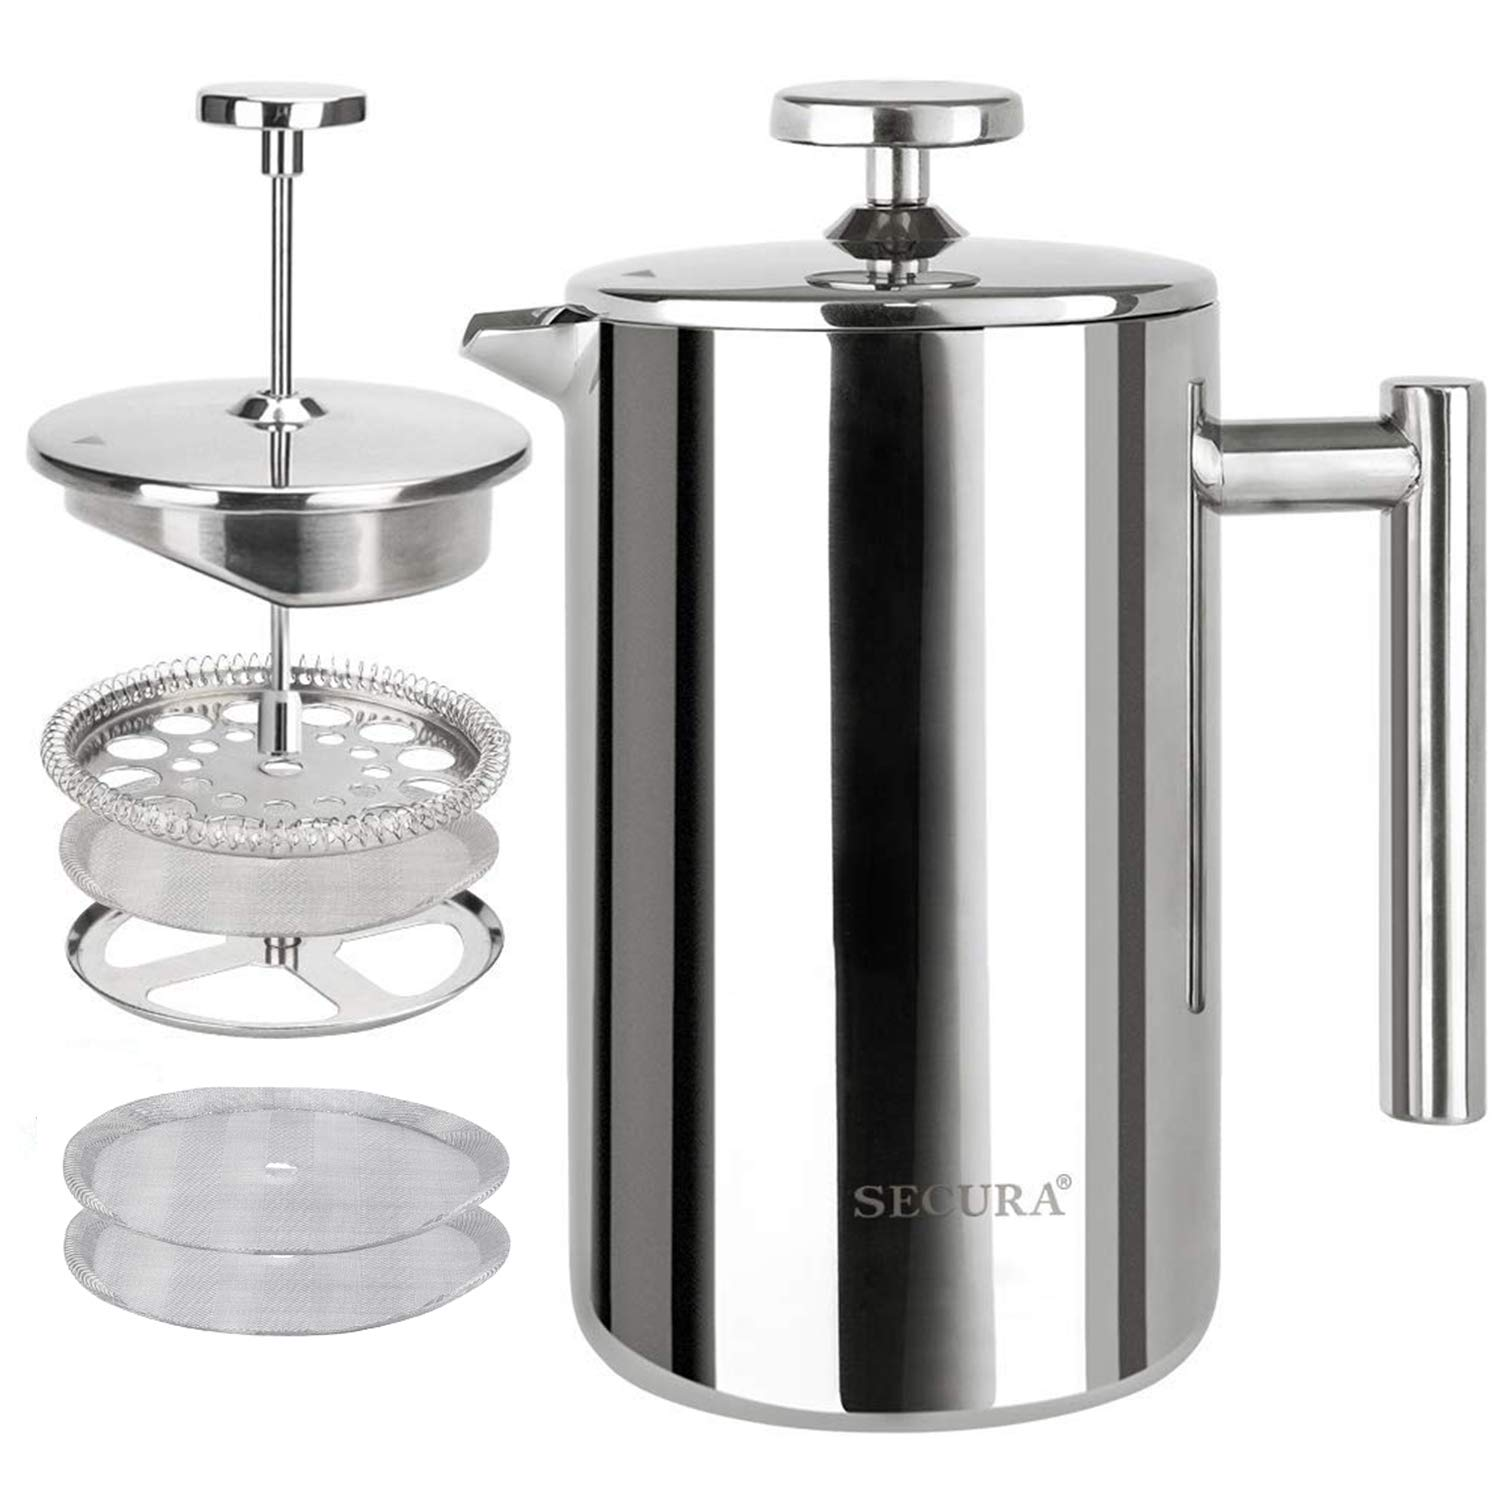 Secura French Press Coffee Maker, 304 Grade Stainless Steel Insulated Coffee Press with 2 extra Screens, 17oz 0.5 Litre , Silver